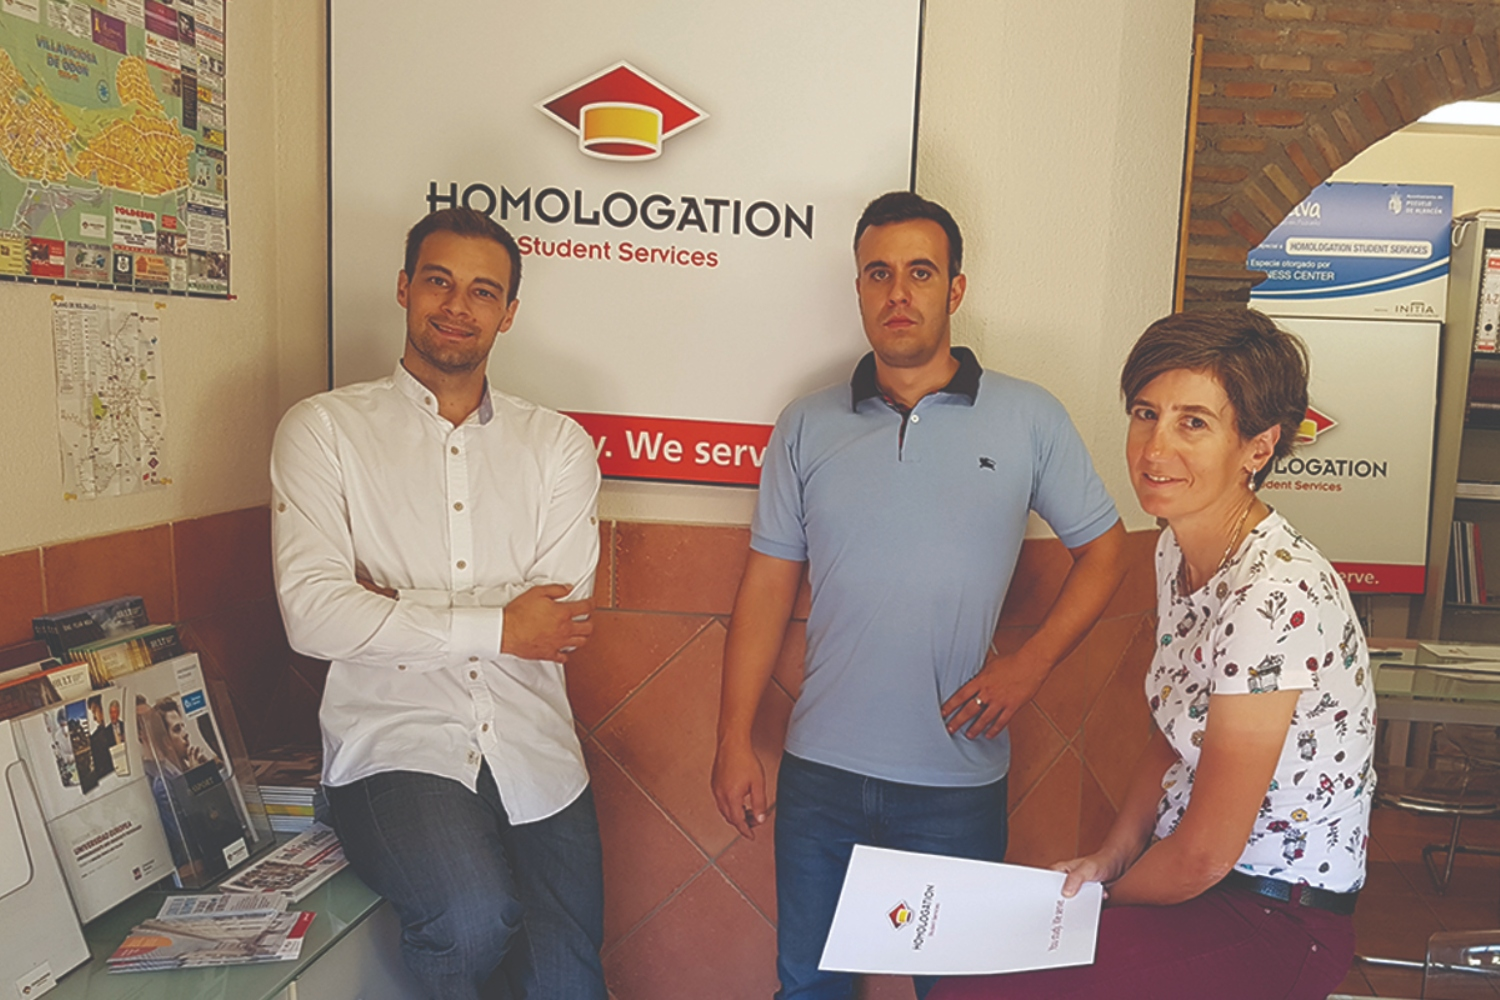 Homolgation Student Services founders